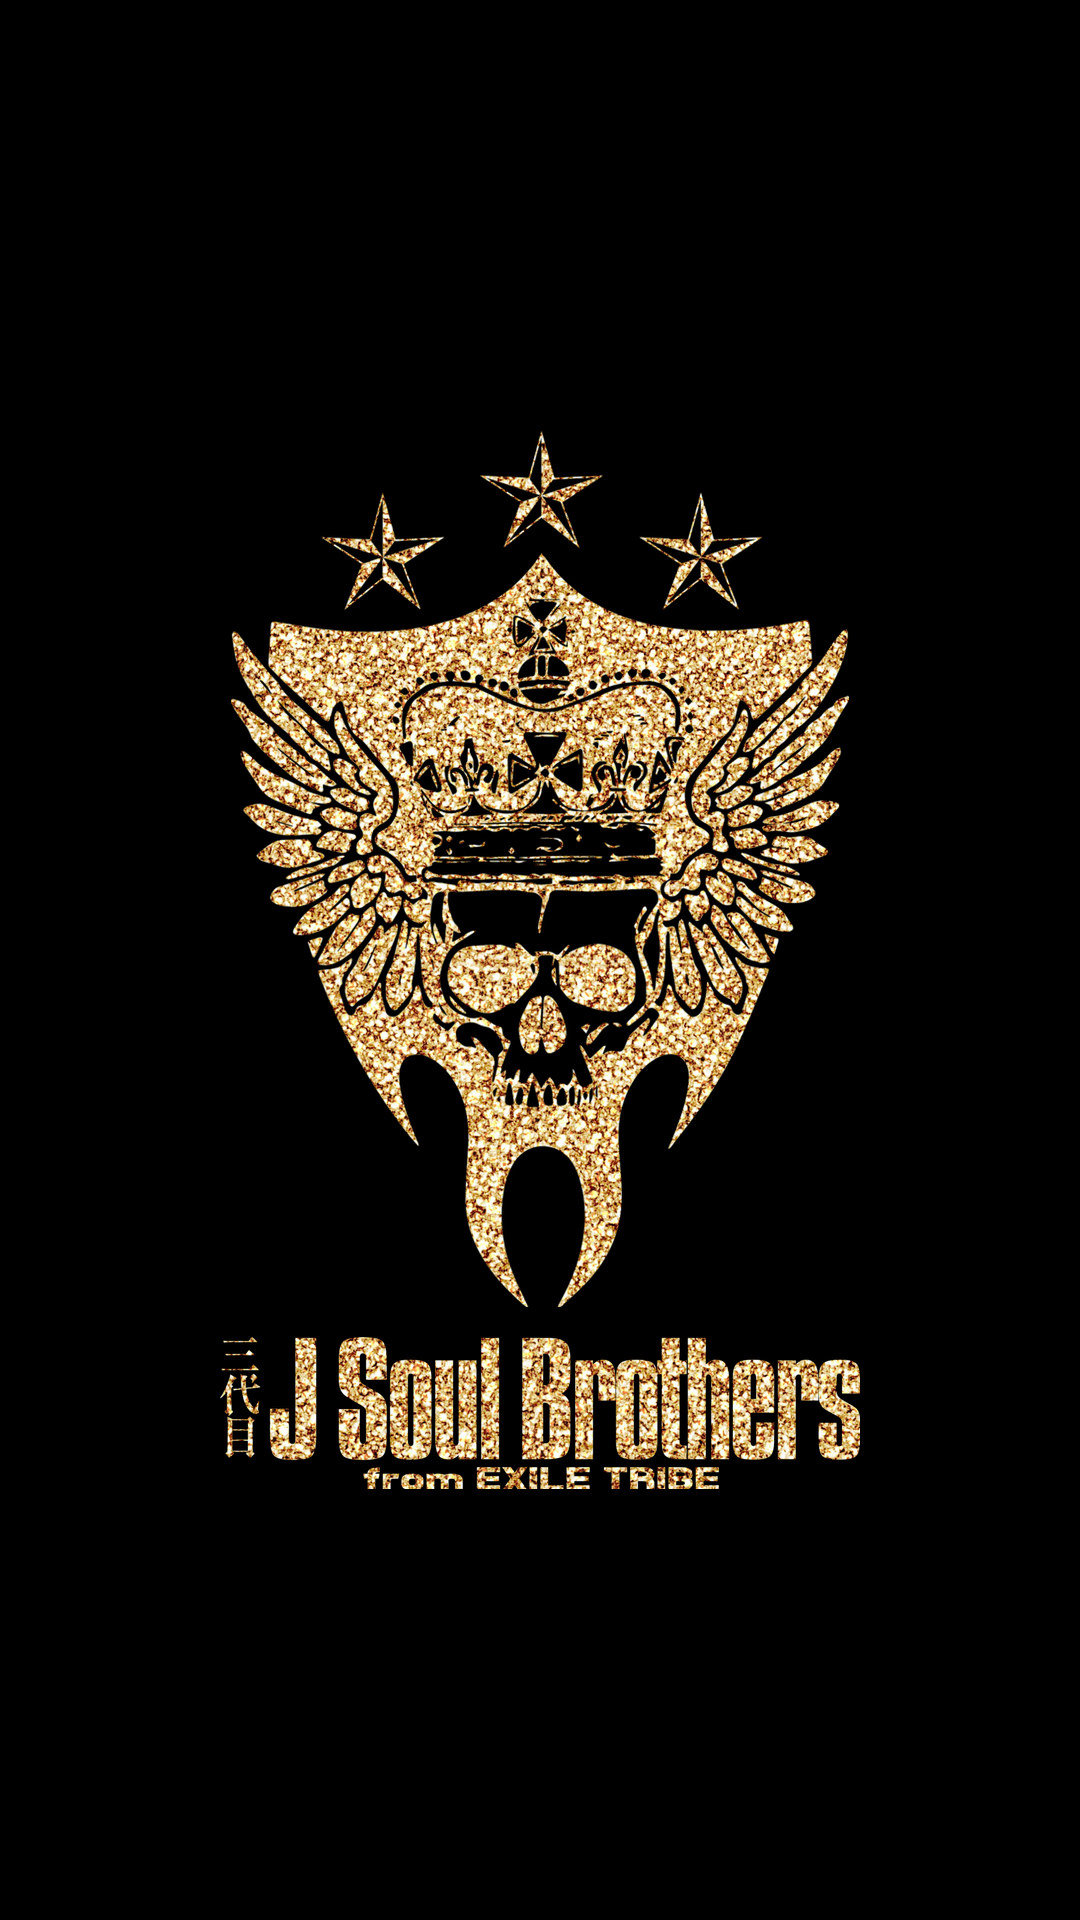 3jsb i19 - 三代目 J SOUL BROTHERSの高画質スマホ壁紙40枚 [iPhone&Androidに対応]